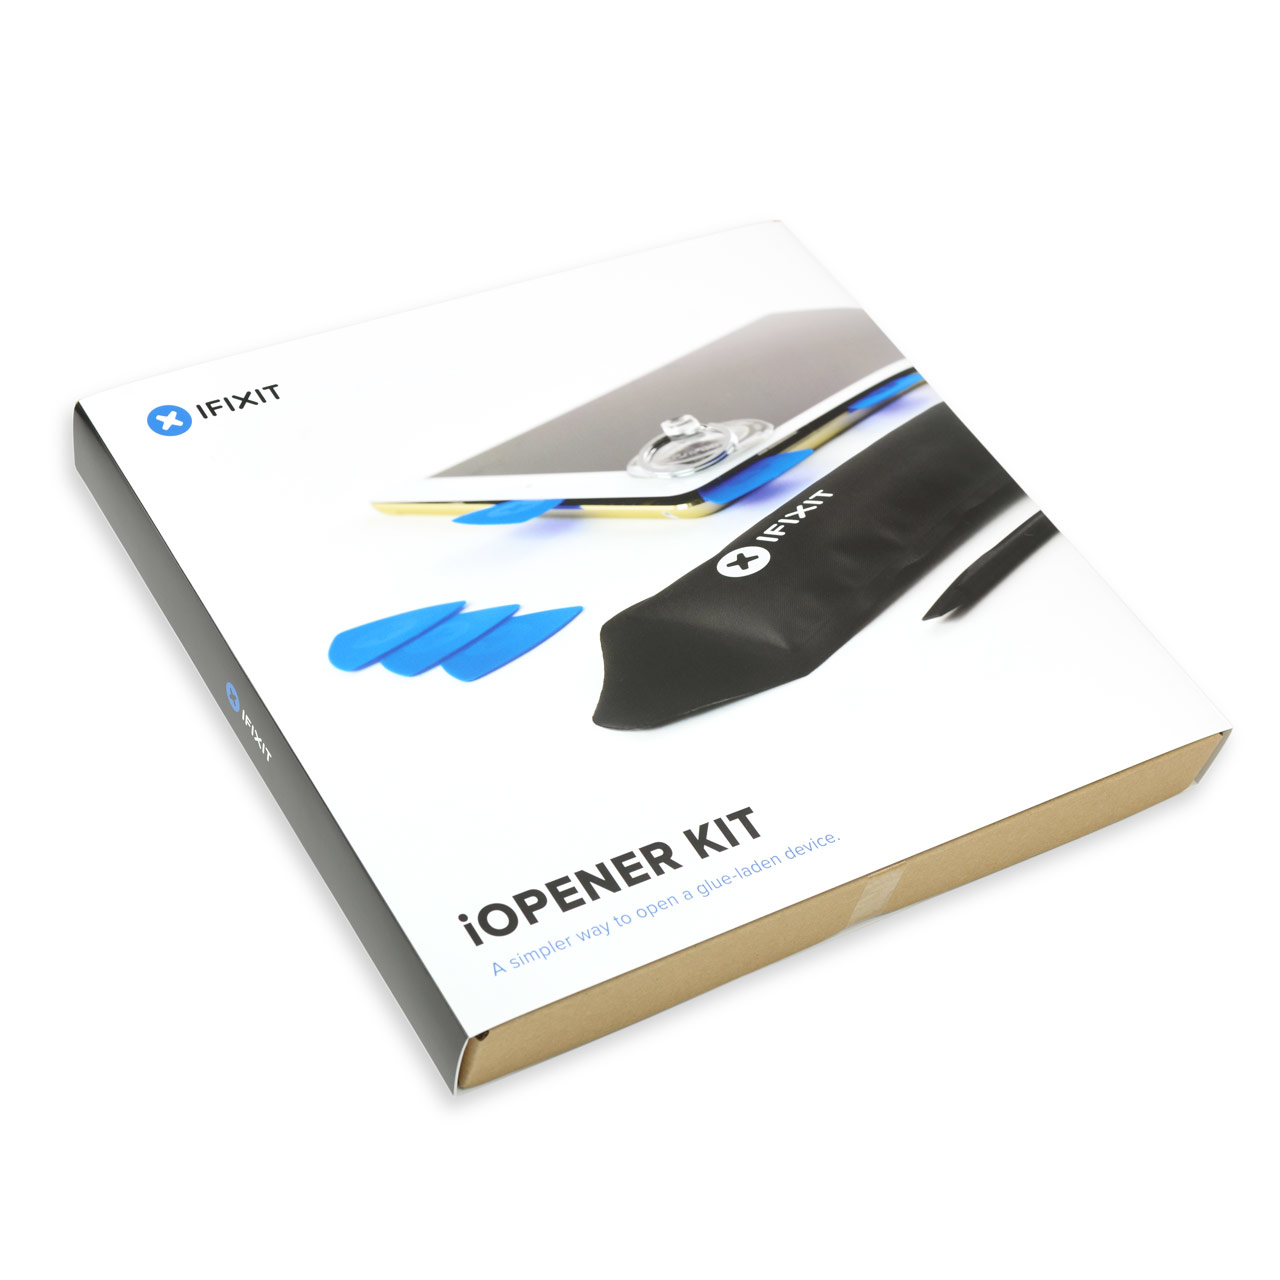 iFixit Toolset for opening iPads